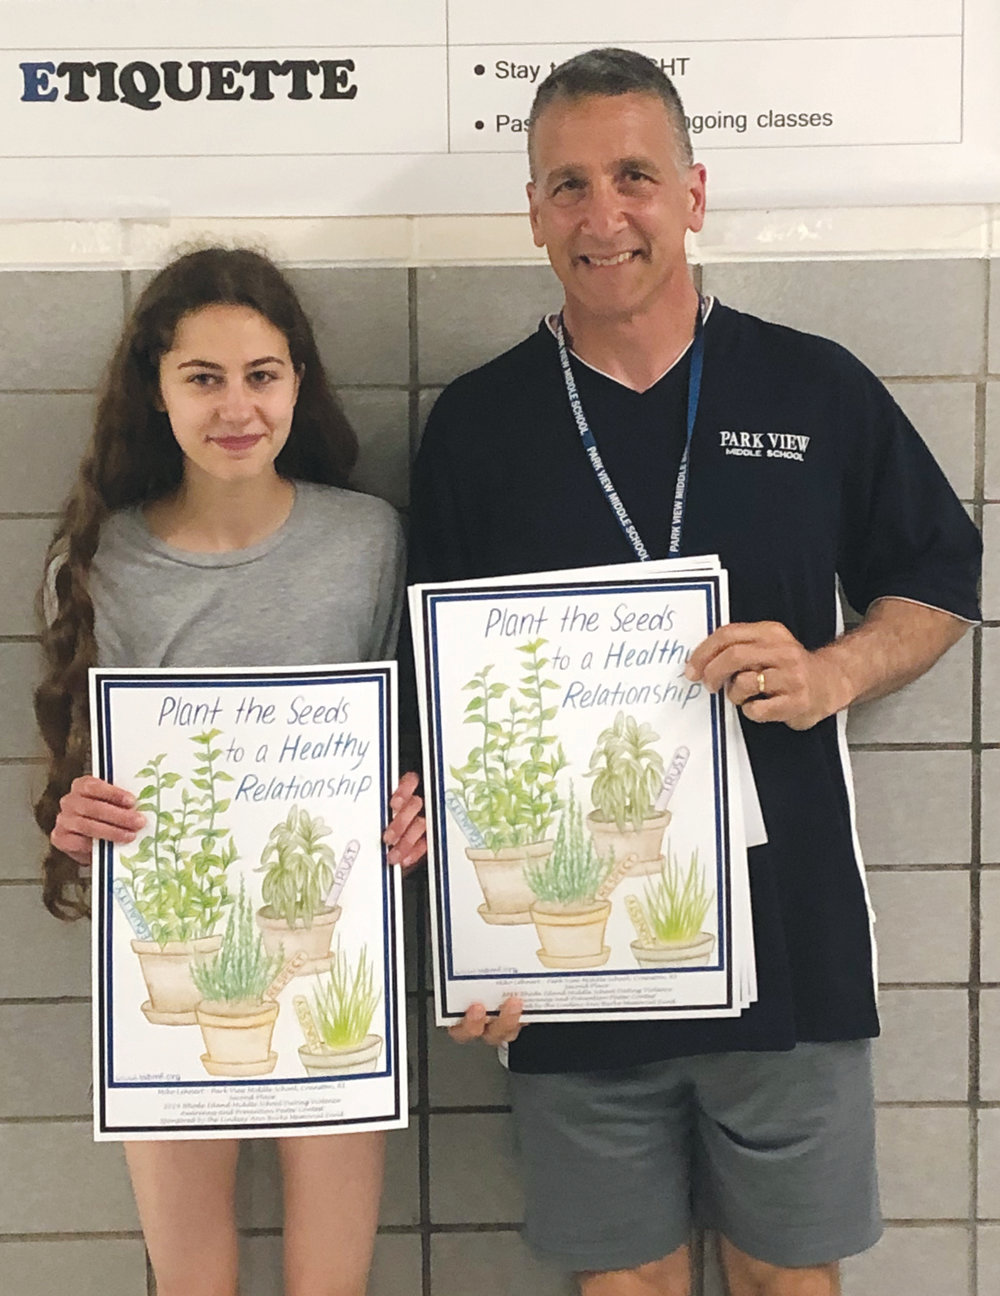 Park View student honored in poster contest | Cranston Herald